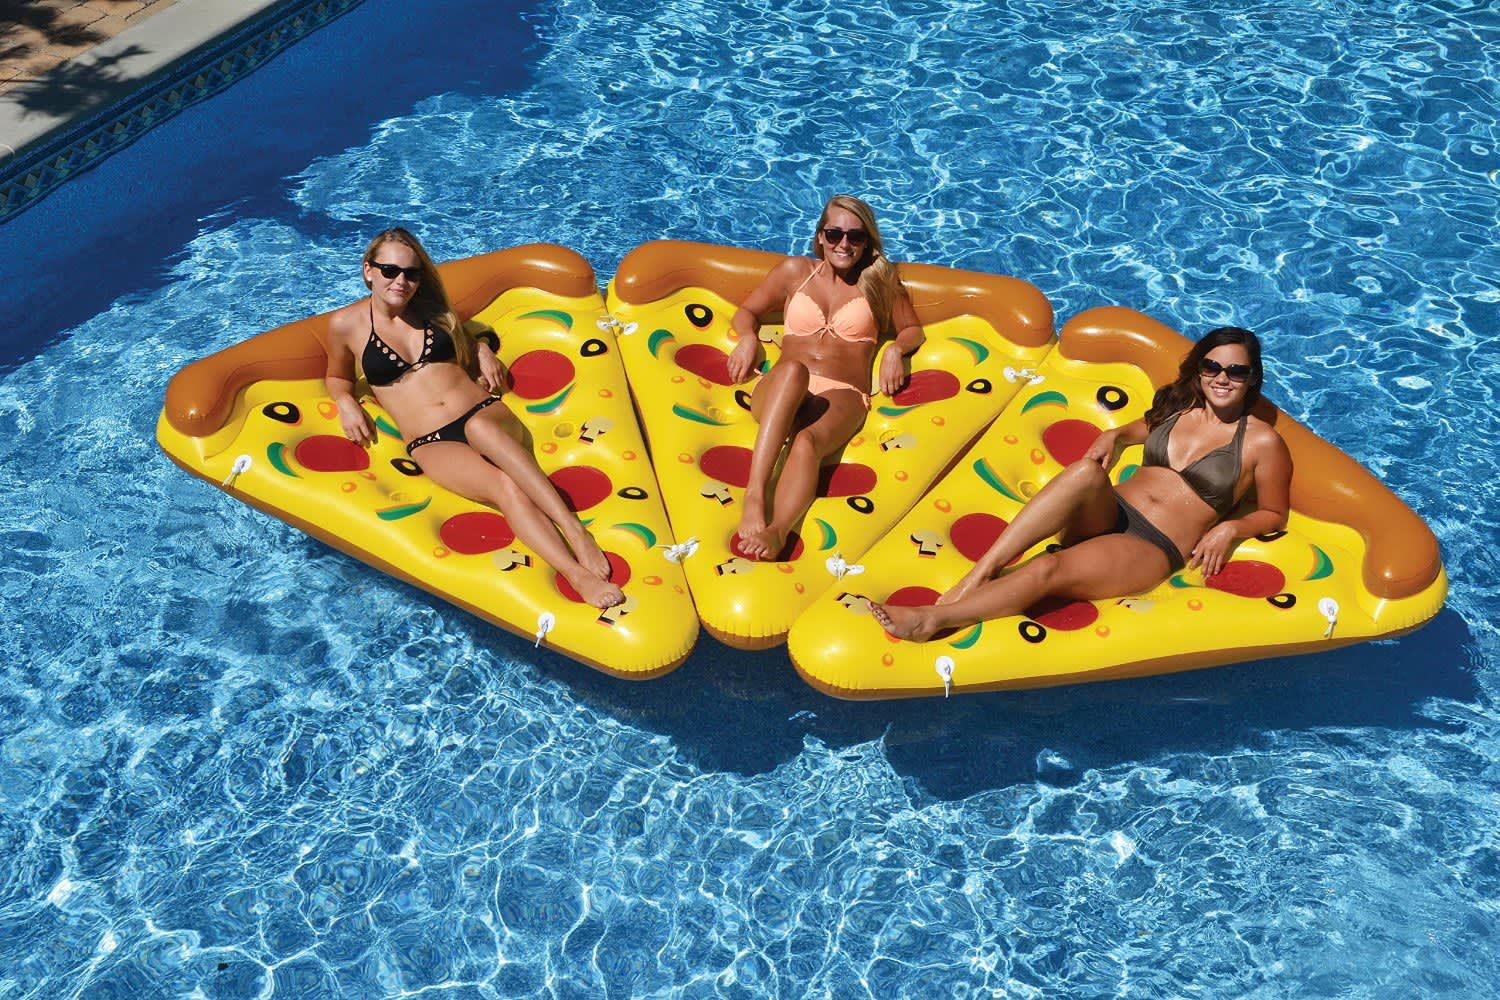 Christmas Themed Pool Floats.14 Food Themed Pool Floats For Endless Summer Fun Kitchn